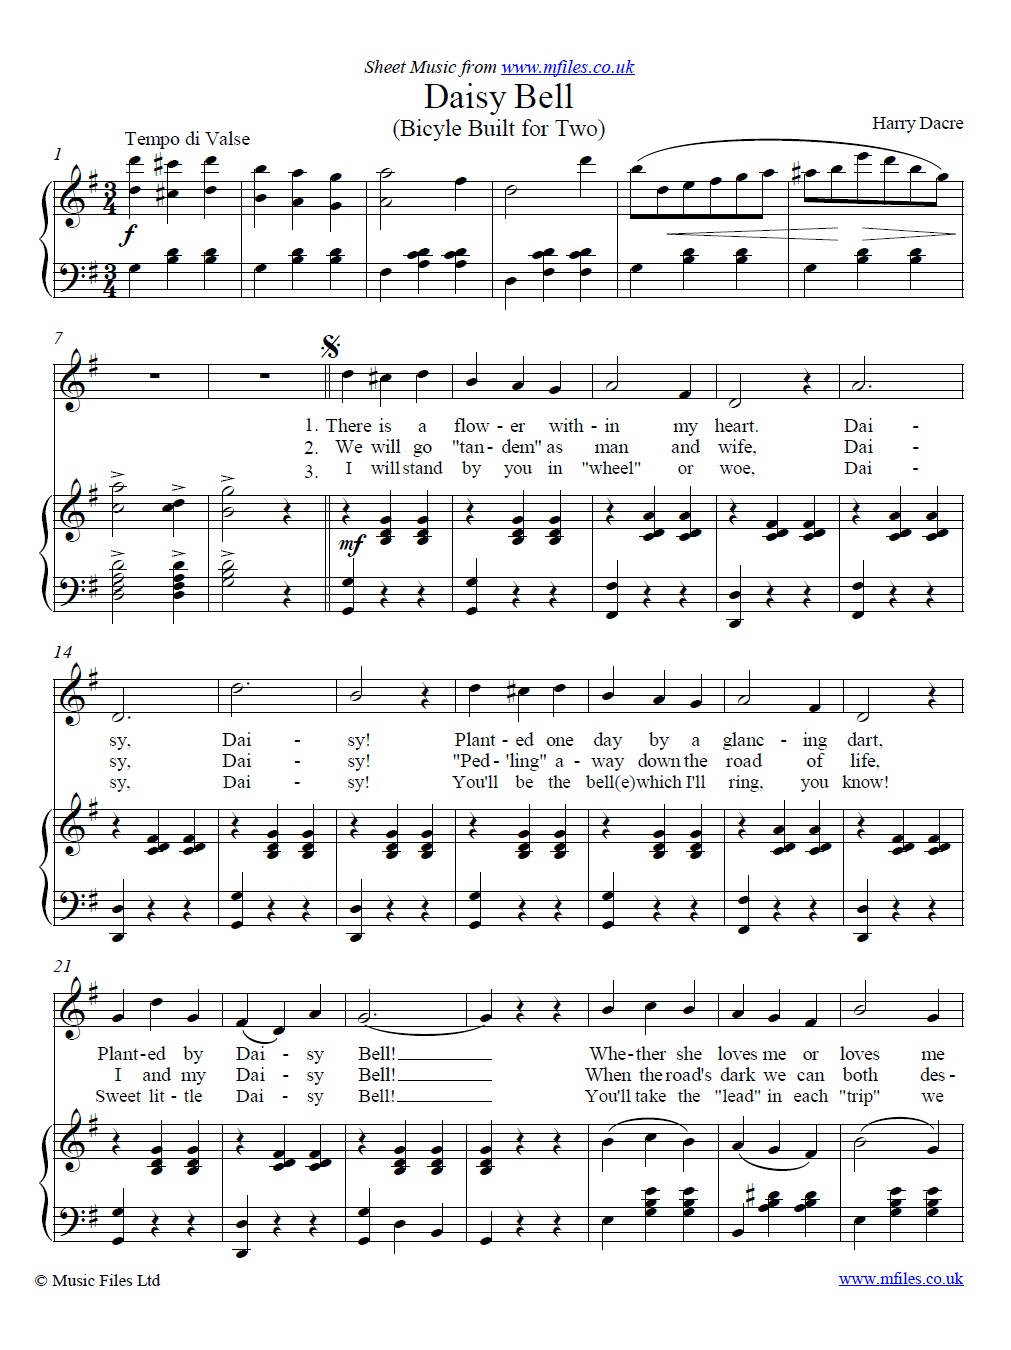 Daisy Bell (piano/vocal) - sheet music 1st page